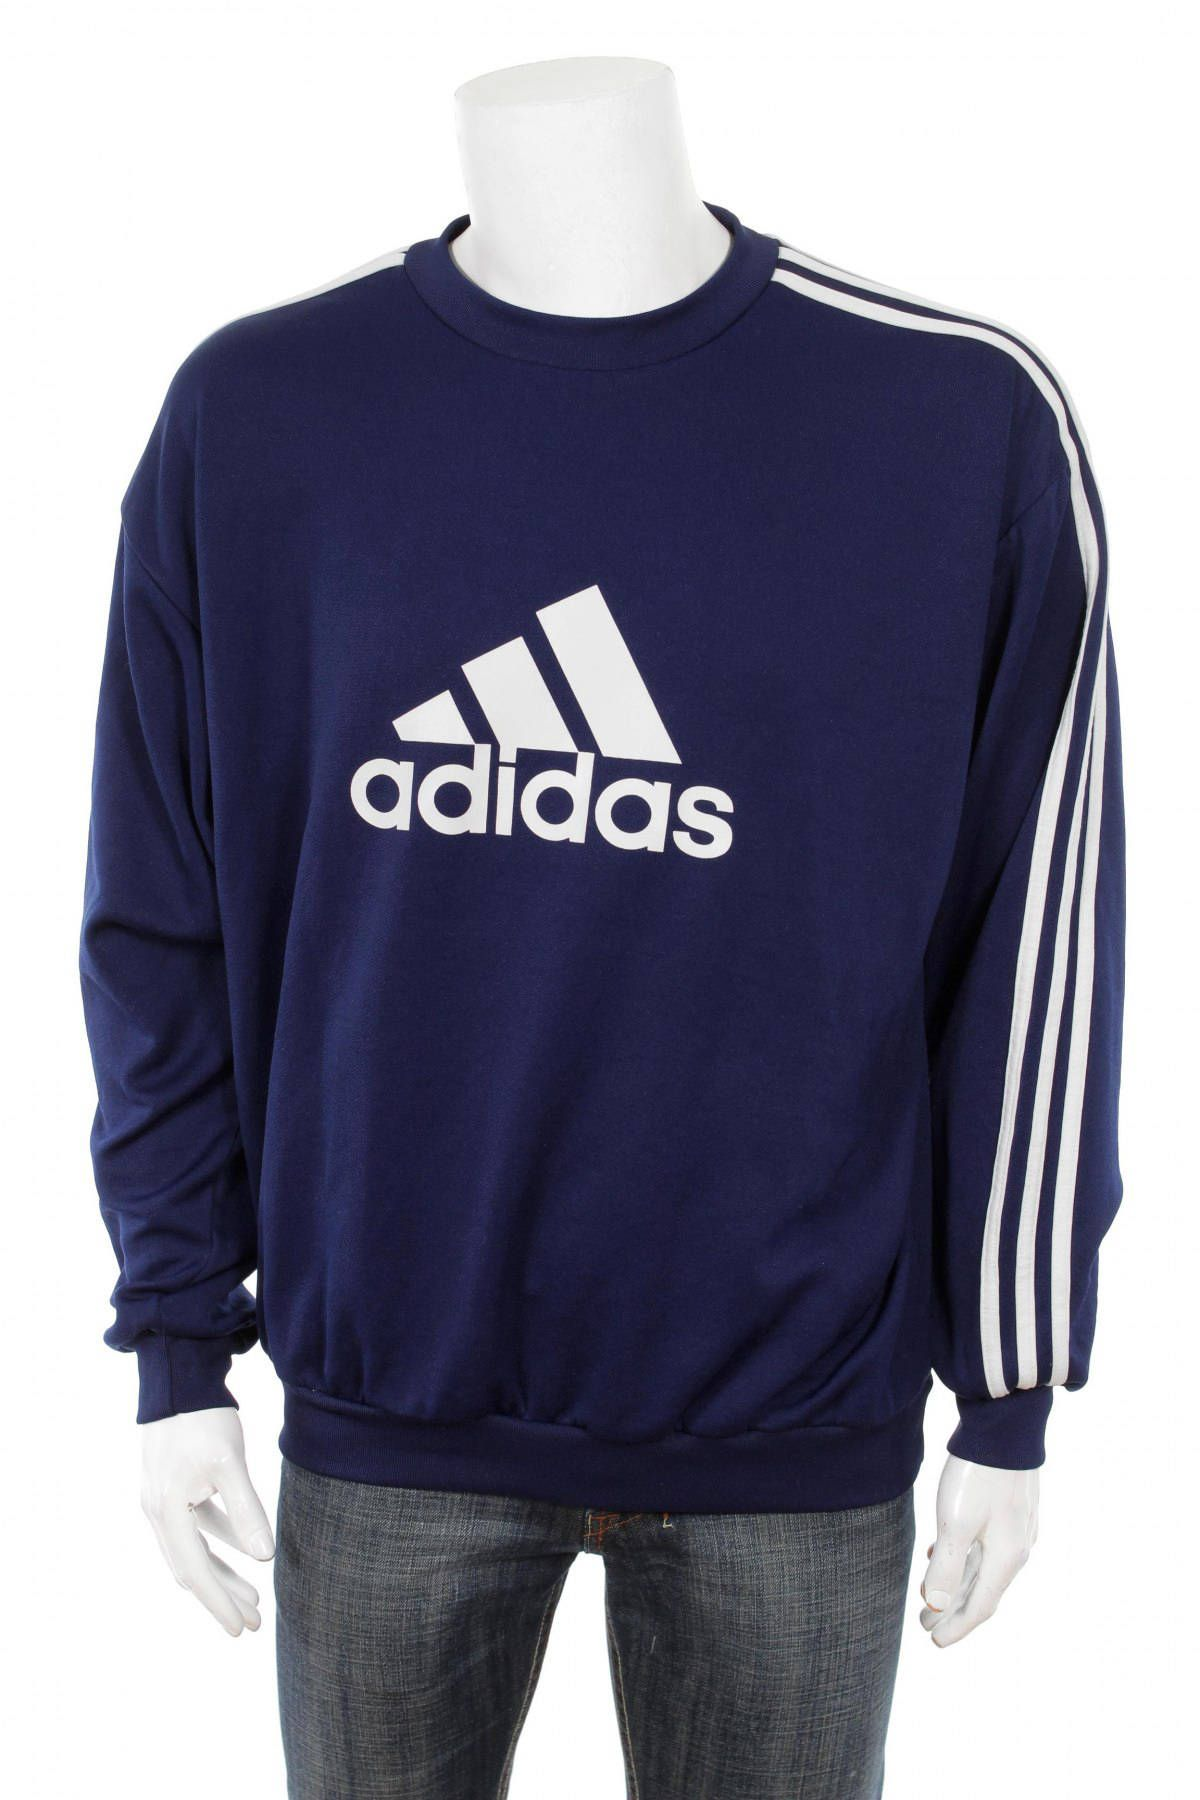 more photos 09d83 98dcf Vintage 90s Adidas Sweatshirt Big Logo Spell Out Navy Blue   White Size XL  D8 by VapeoVintage on Etsy